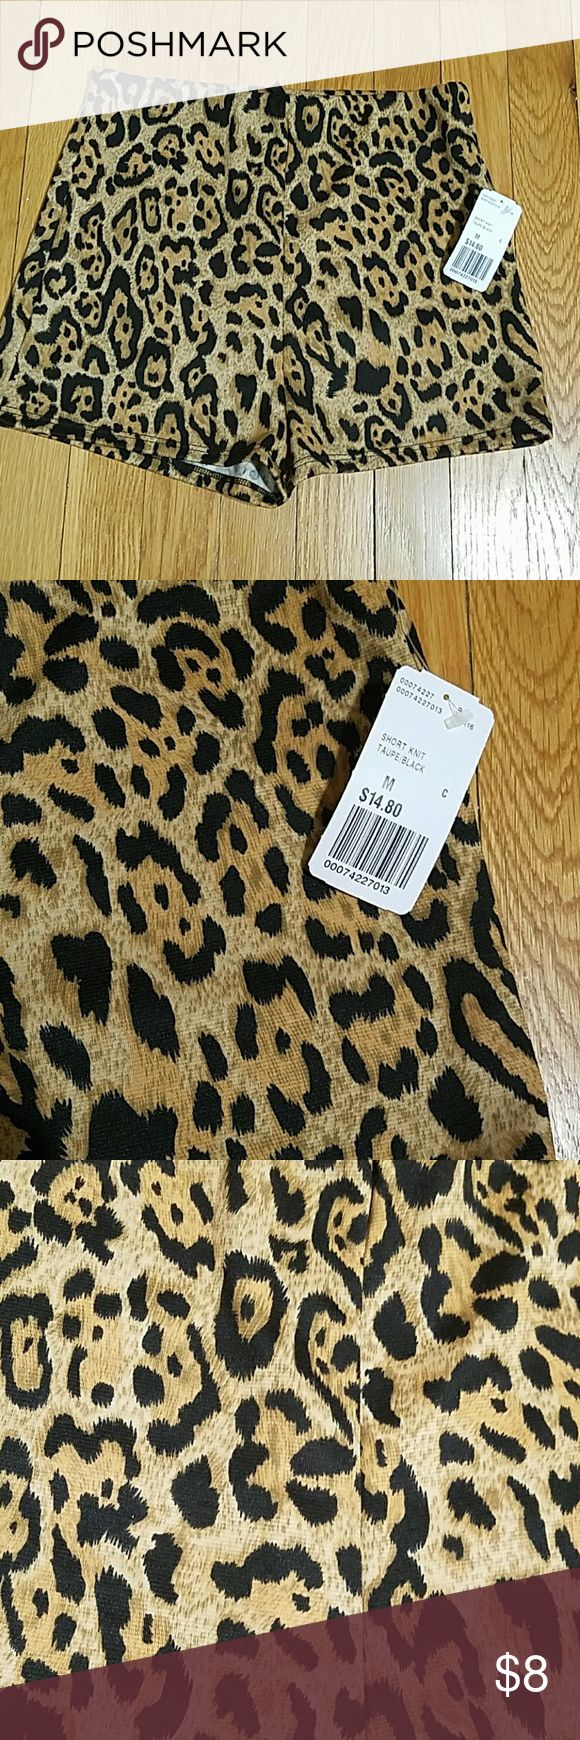 Forever21 Cheetah Shorts NEW W/ TAGS, Stretchy Cheetah Shorts Forever 21 Shorts